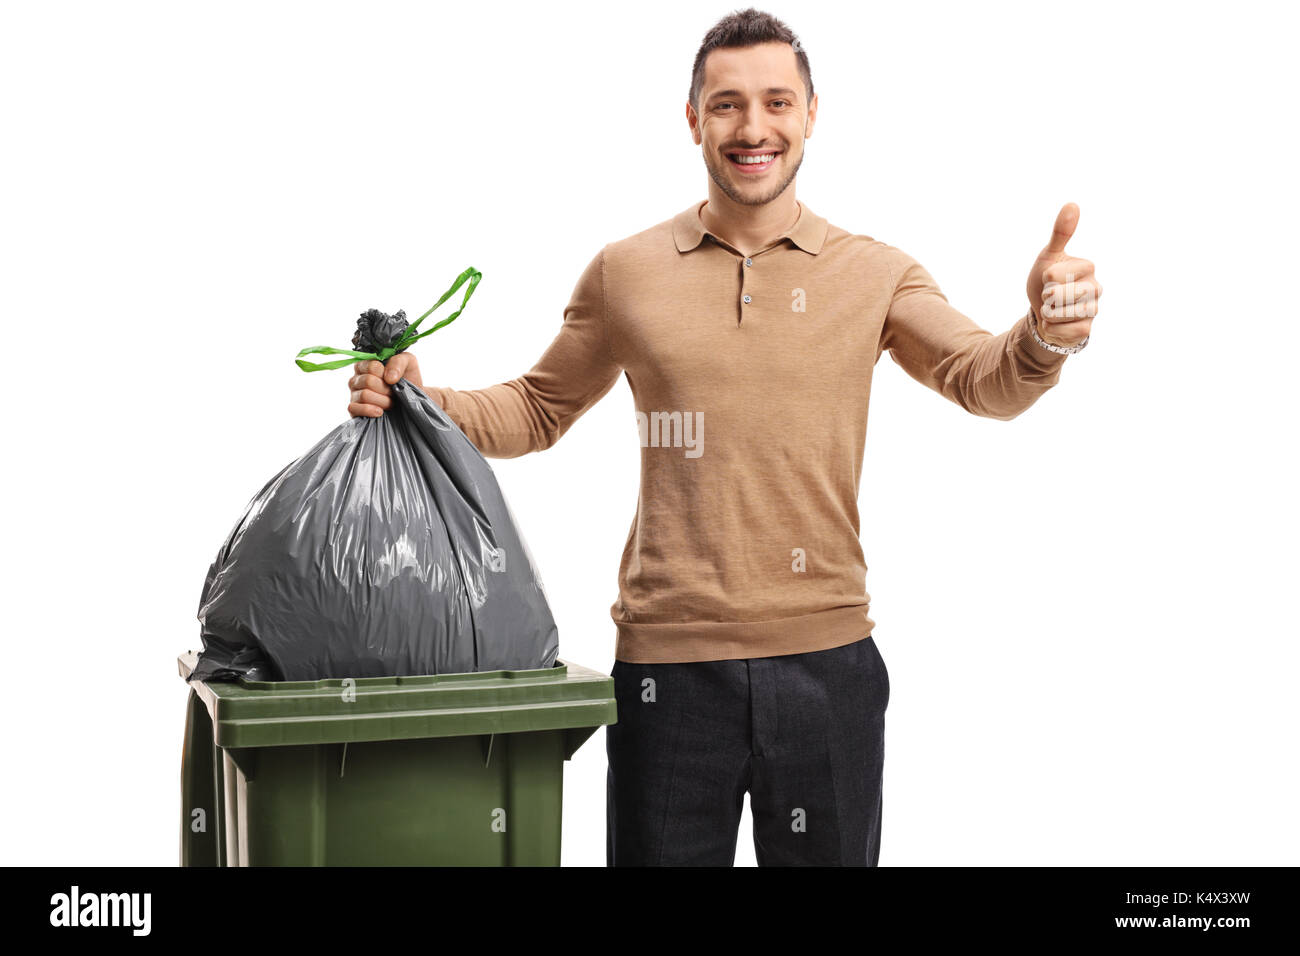 Young man throwing out the trash and making a thumb up gesture isolated on white background - Stock Image